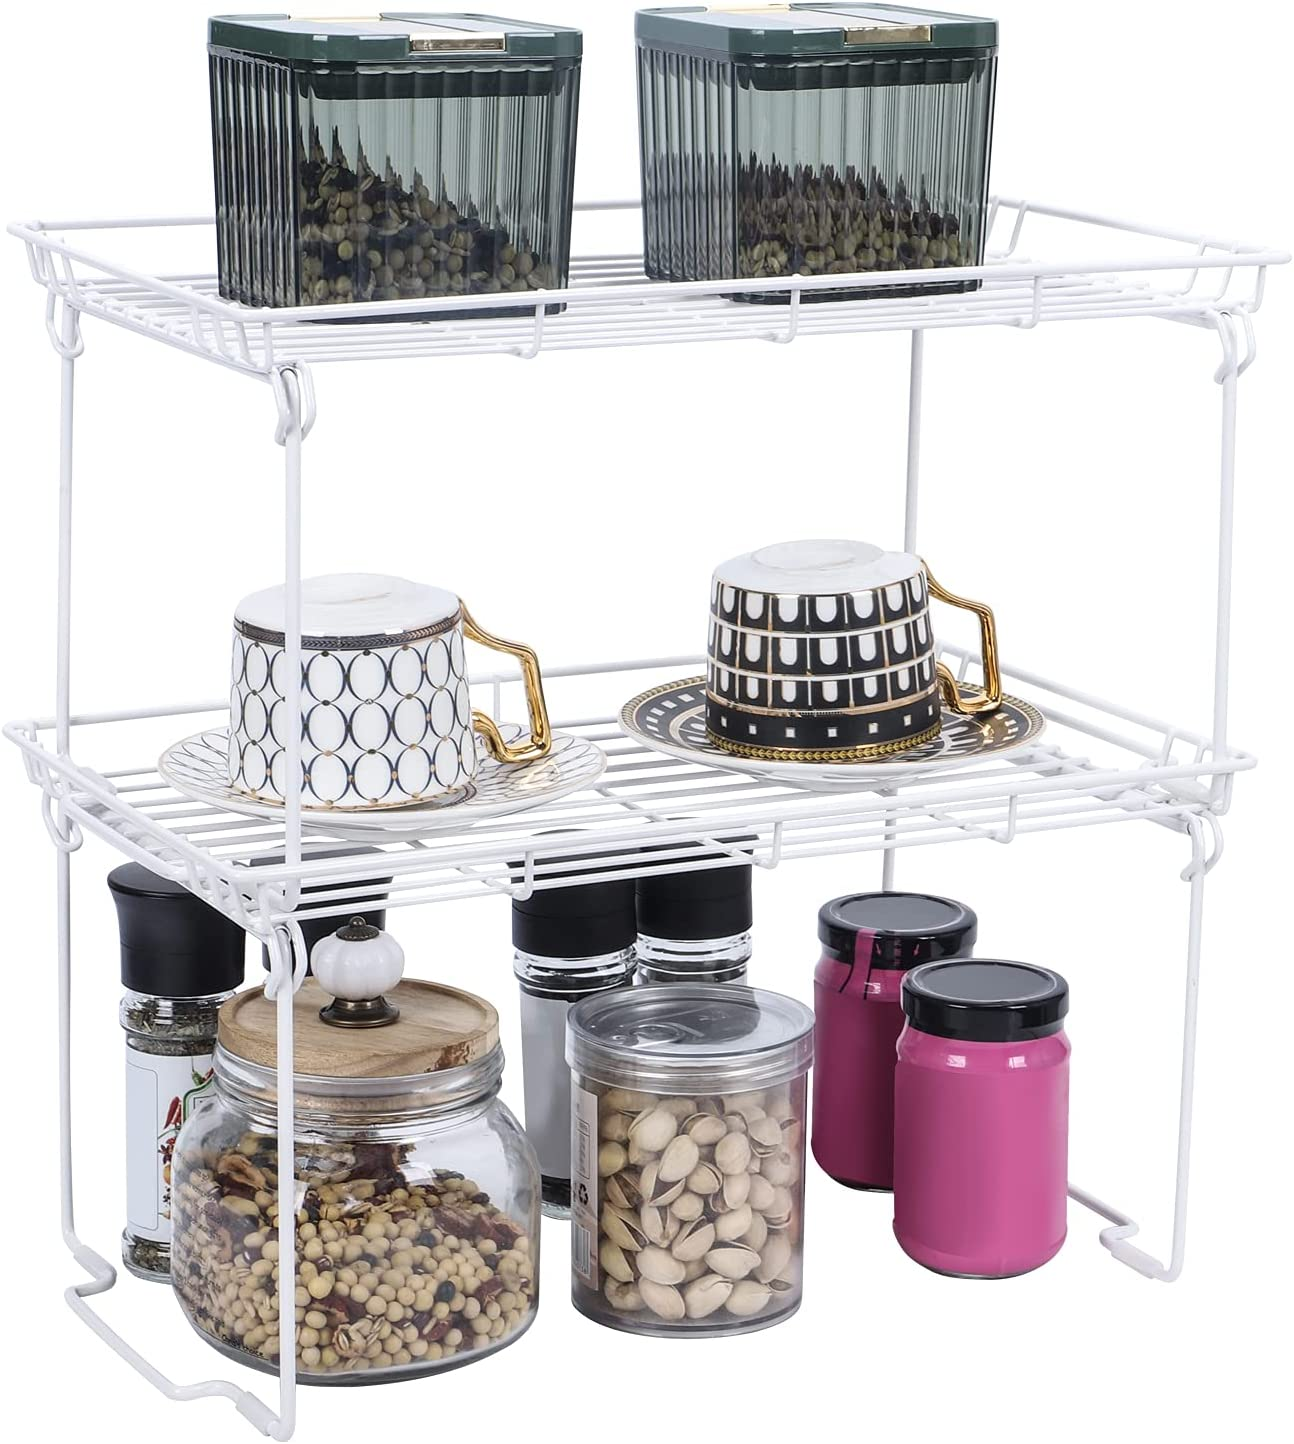 Qboid SP Stackable Kitchen Cabinet Shelf -2 Pack White Cabinet Organizers and Storage -Pantry Shelves Organizer with Guardrails Design for Food, Canned Goods, Condiments - Shelf Size: 15x7.6x9.0